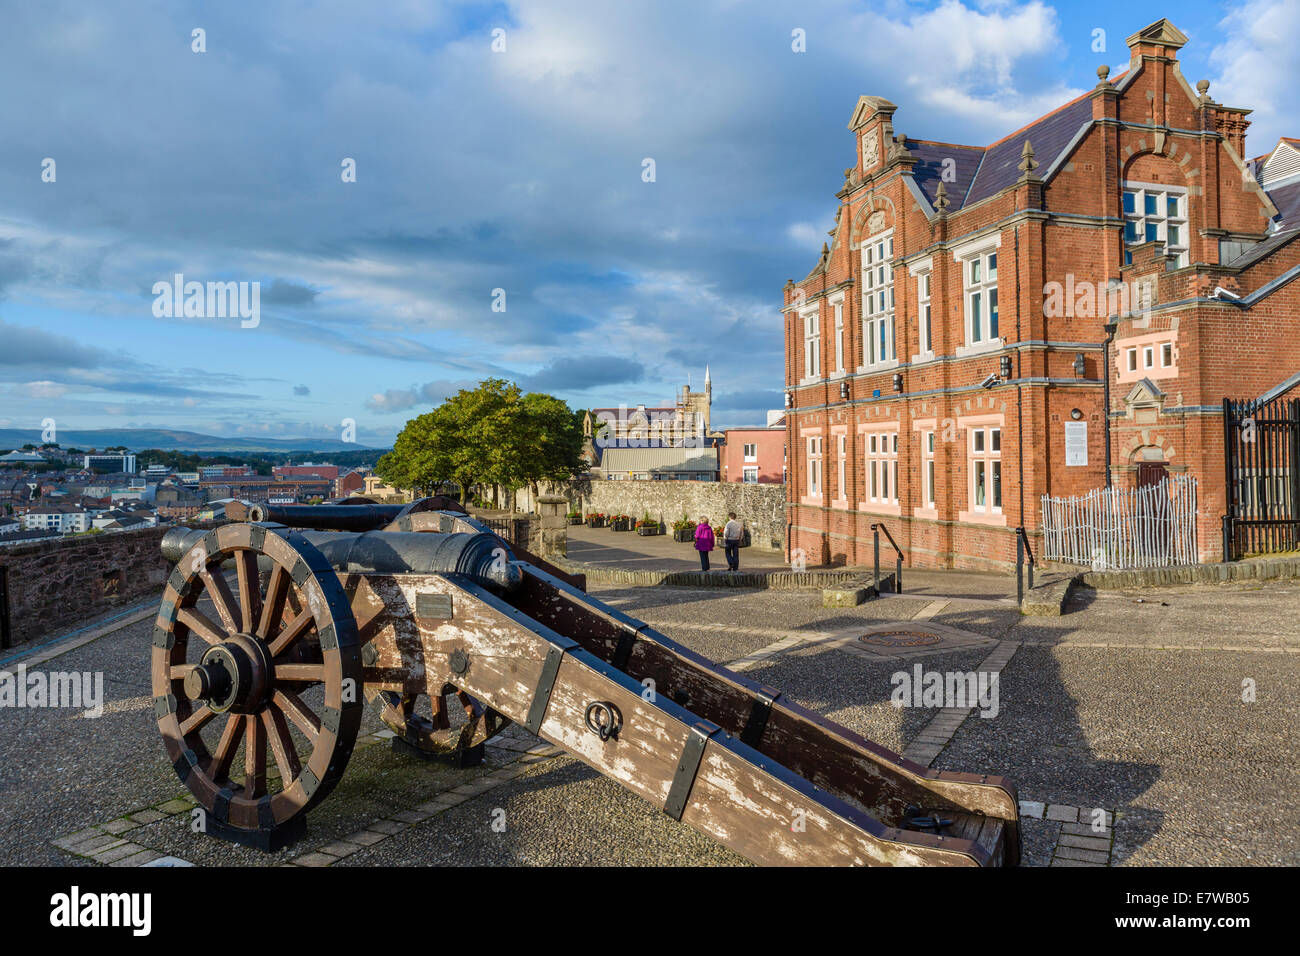 The old city walls from the Royal Bastion in the early evening, Derry, County Londonderry, Northern Ireland, UK - Stock Image